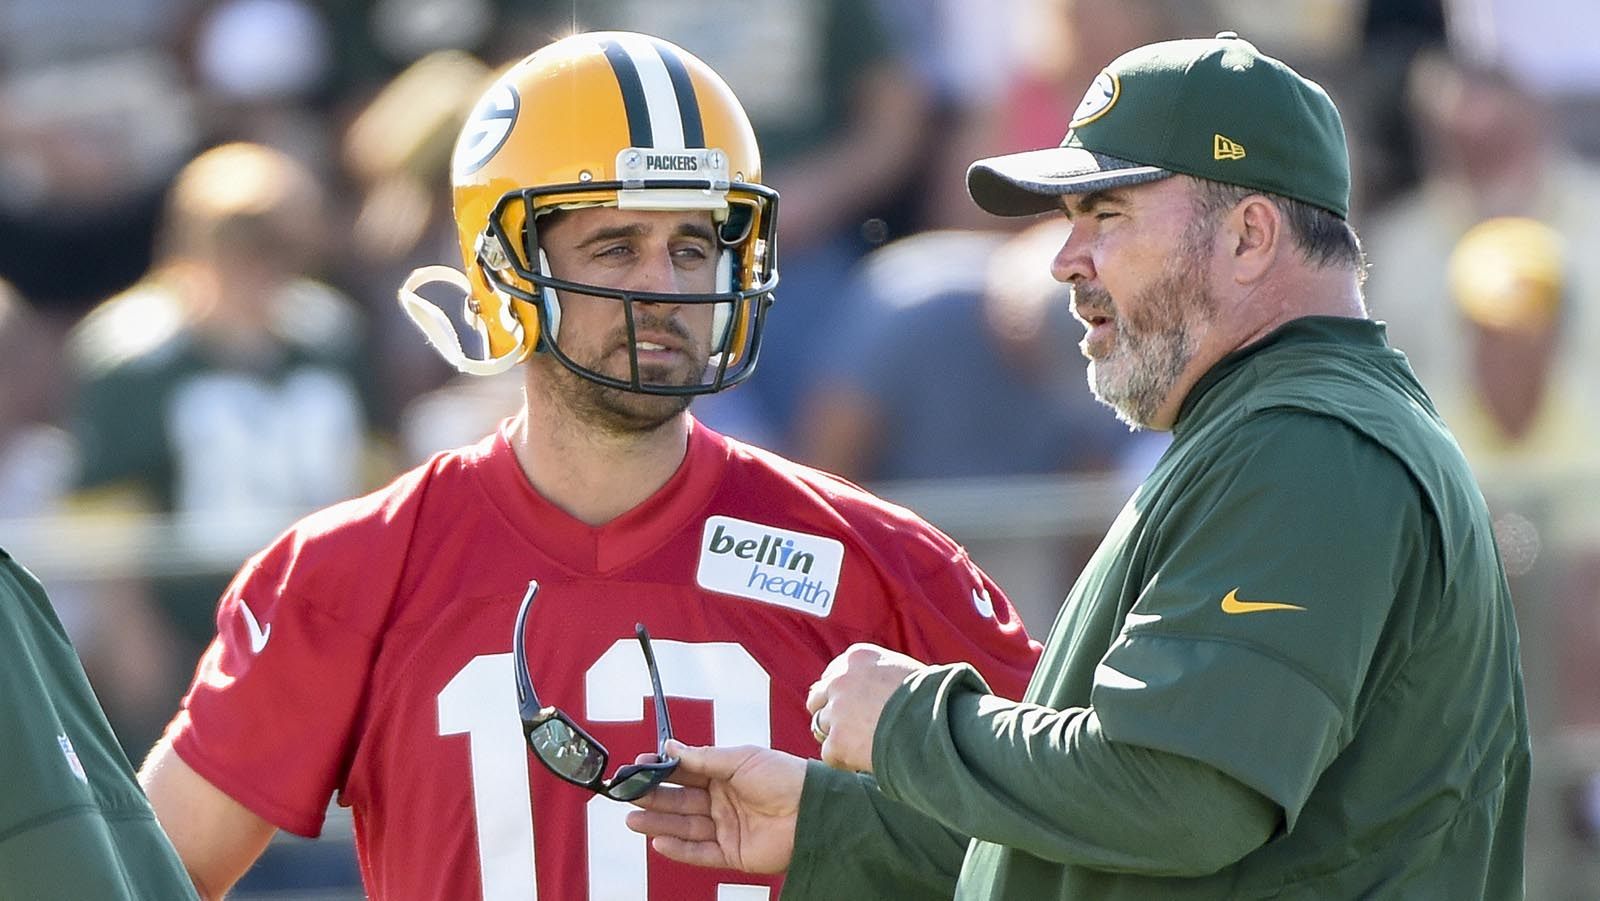 Jul 26, 2016; De Pere, WI, USA; Green Bay Packers quarterback Aaron Rodgers (12) talks to head coach Mike McCarthy (right) during training camp at Ray Nitschke Field. Mandatory Credit: Benny Sieu-USA TODAY Sports